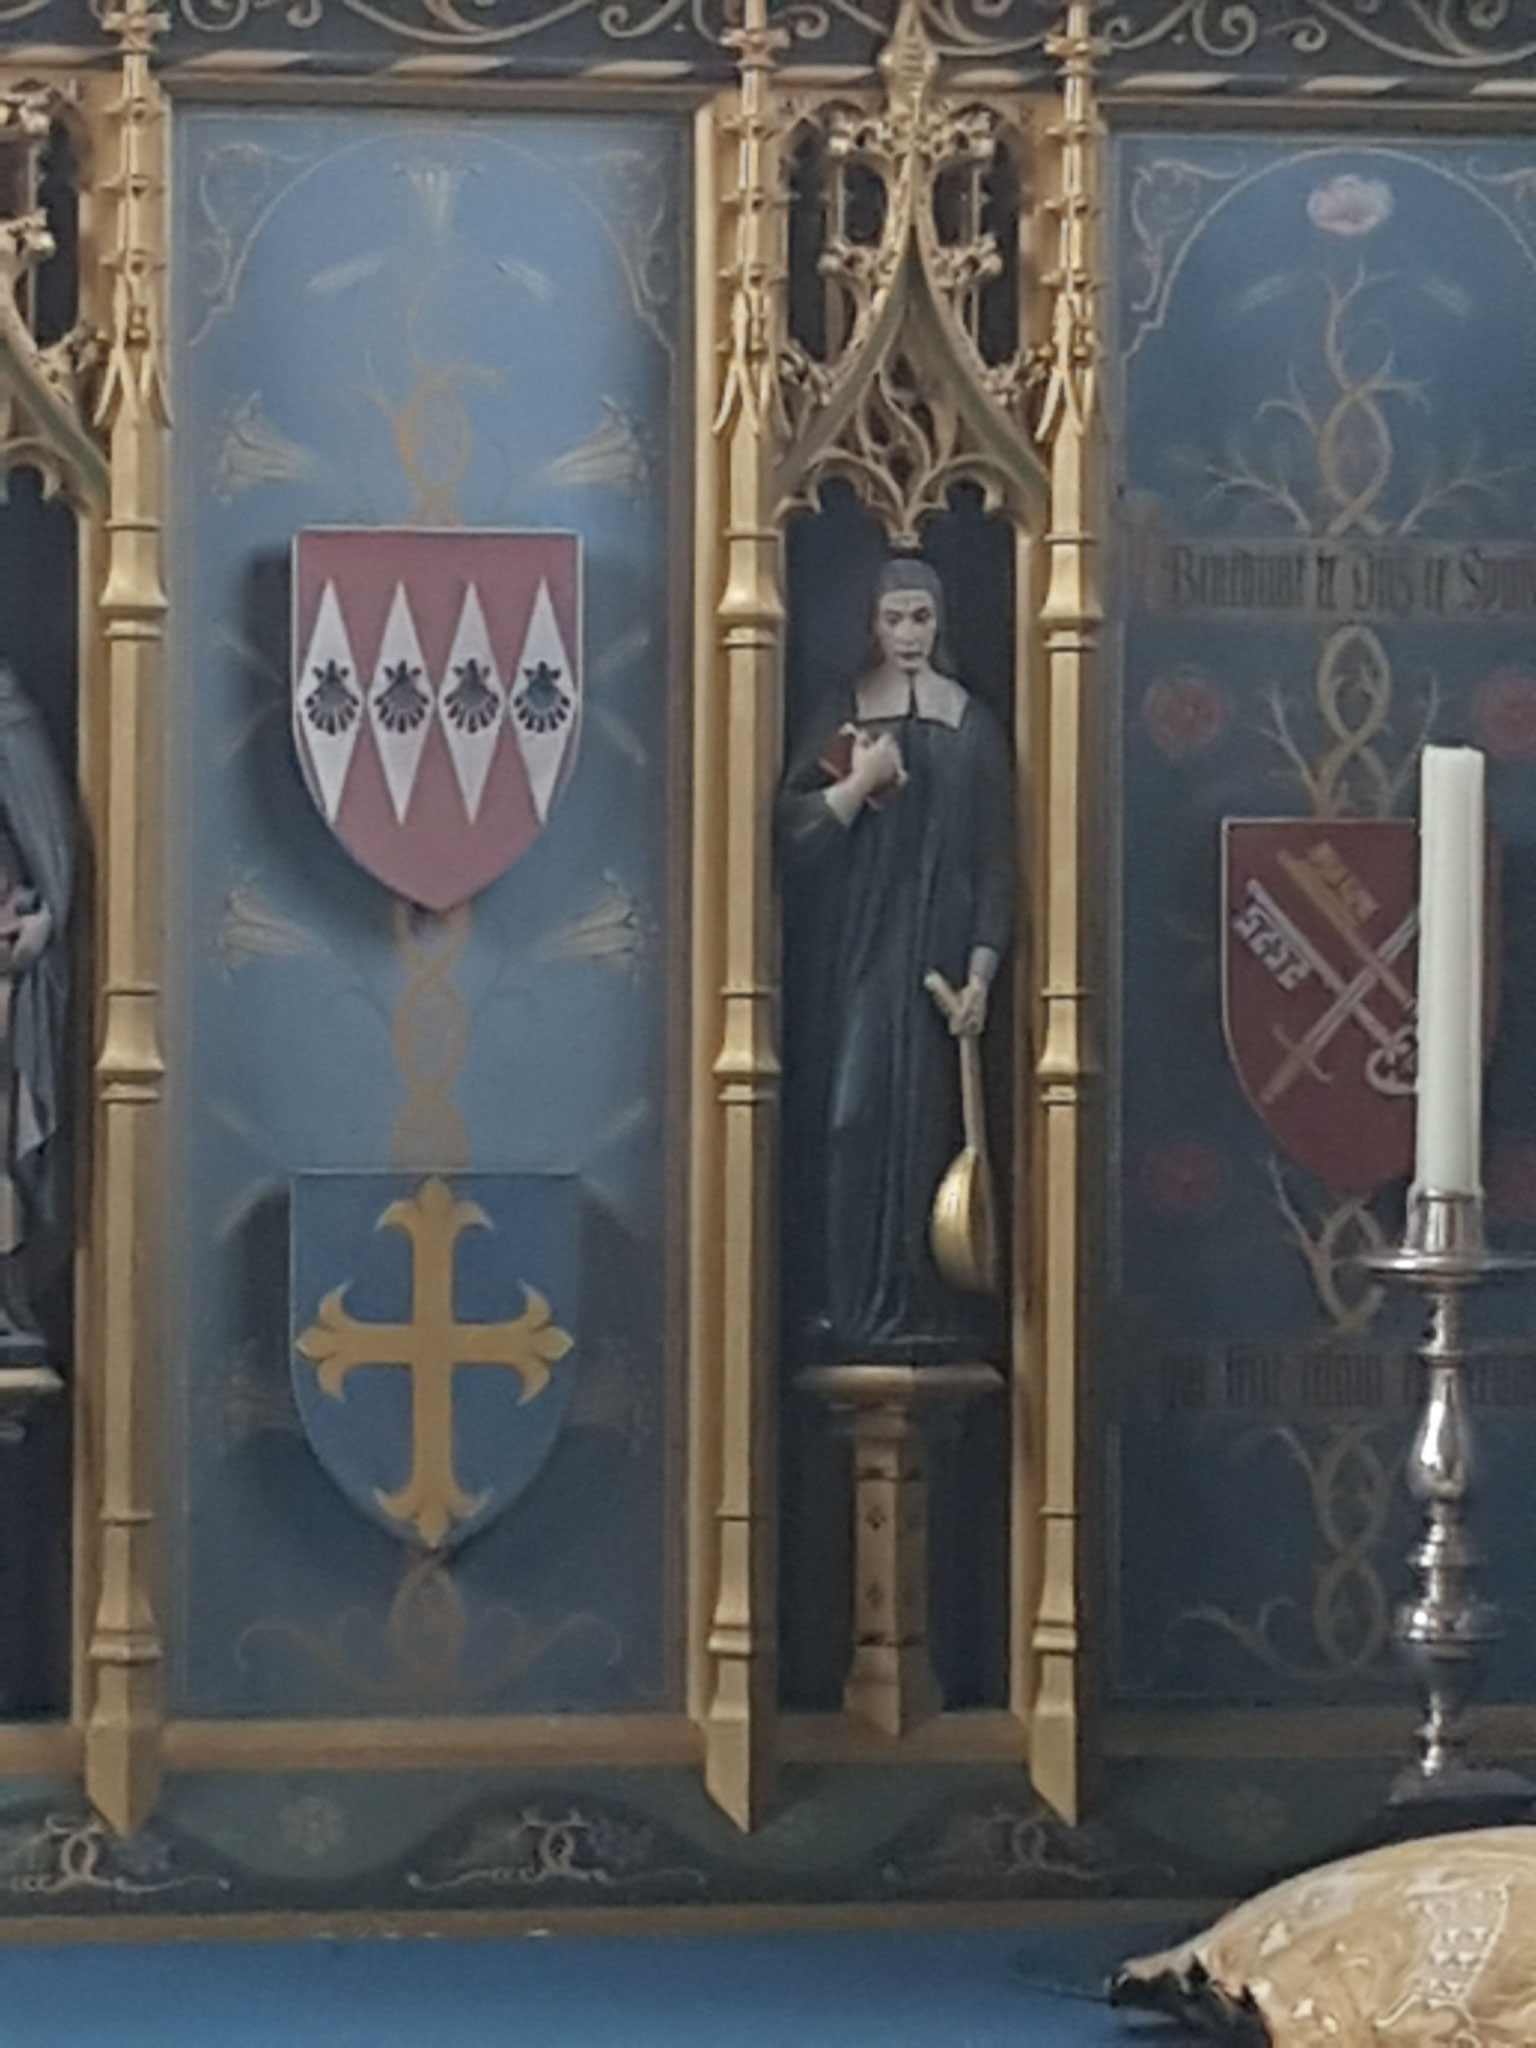 George Herbert with mandolin on the Neo-Gothic 1930s reredos